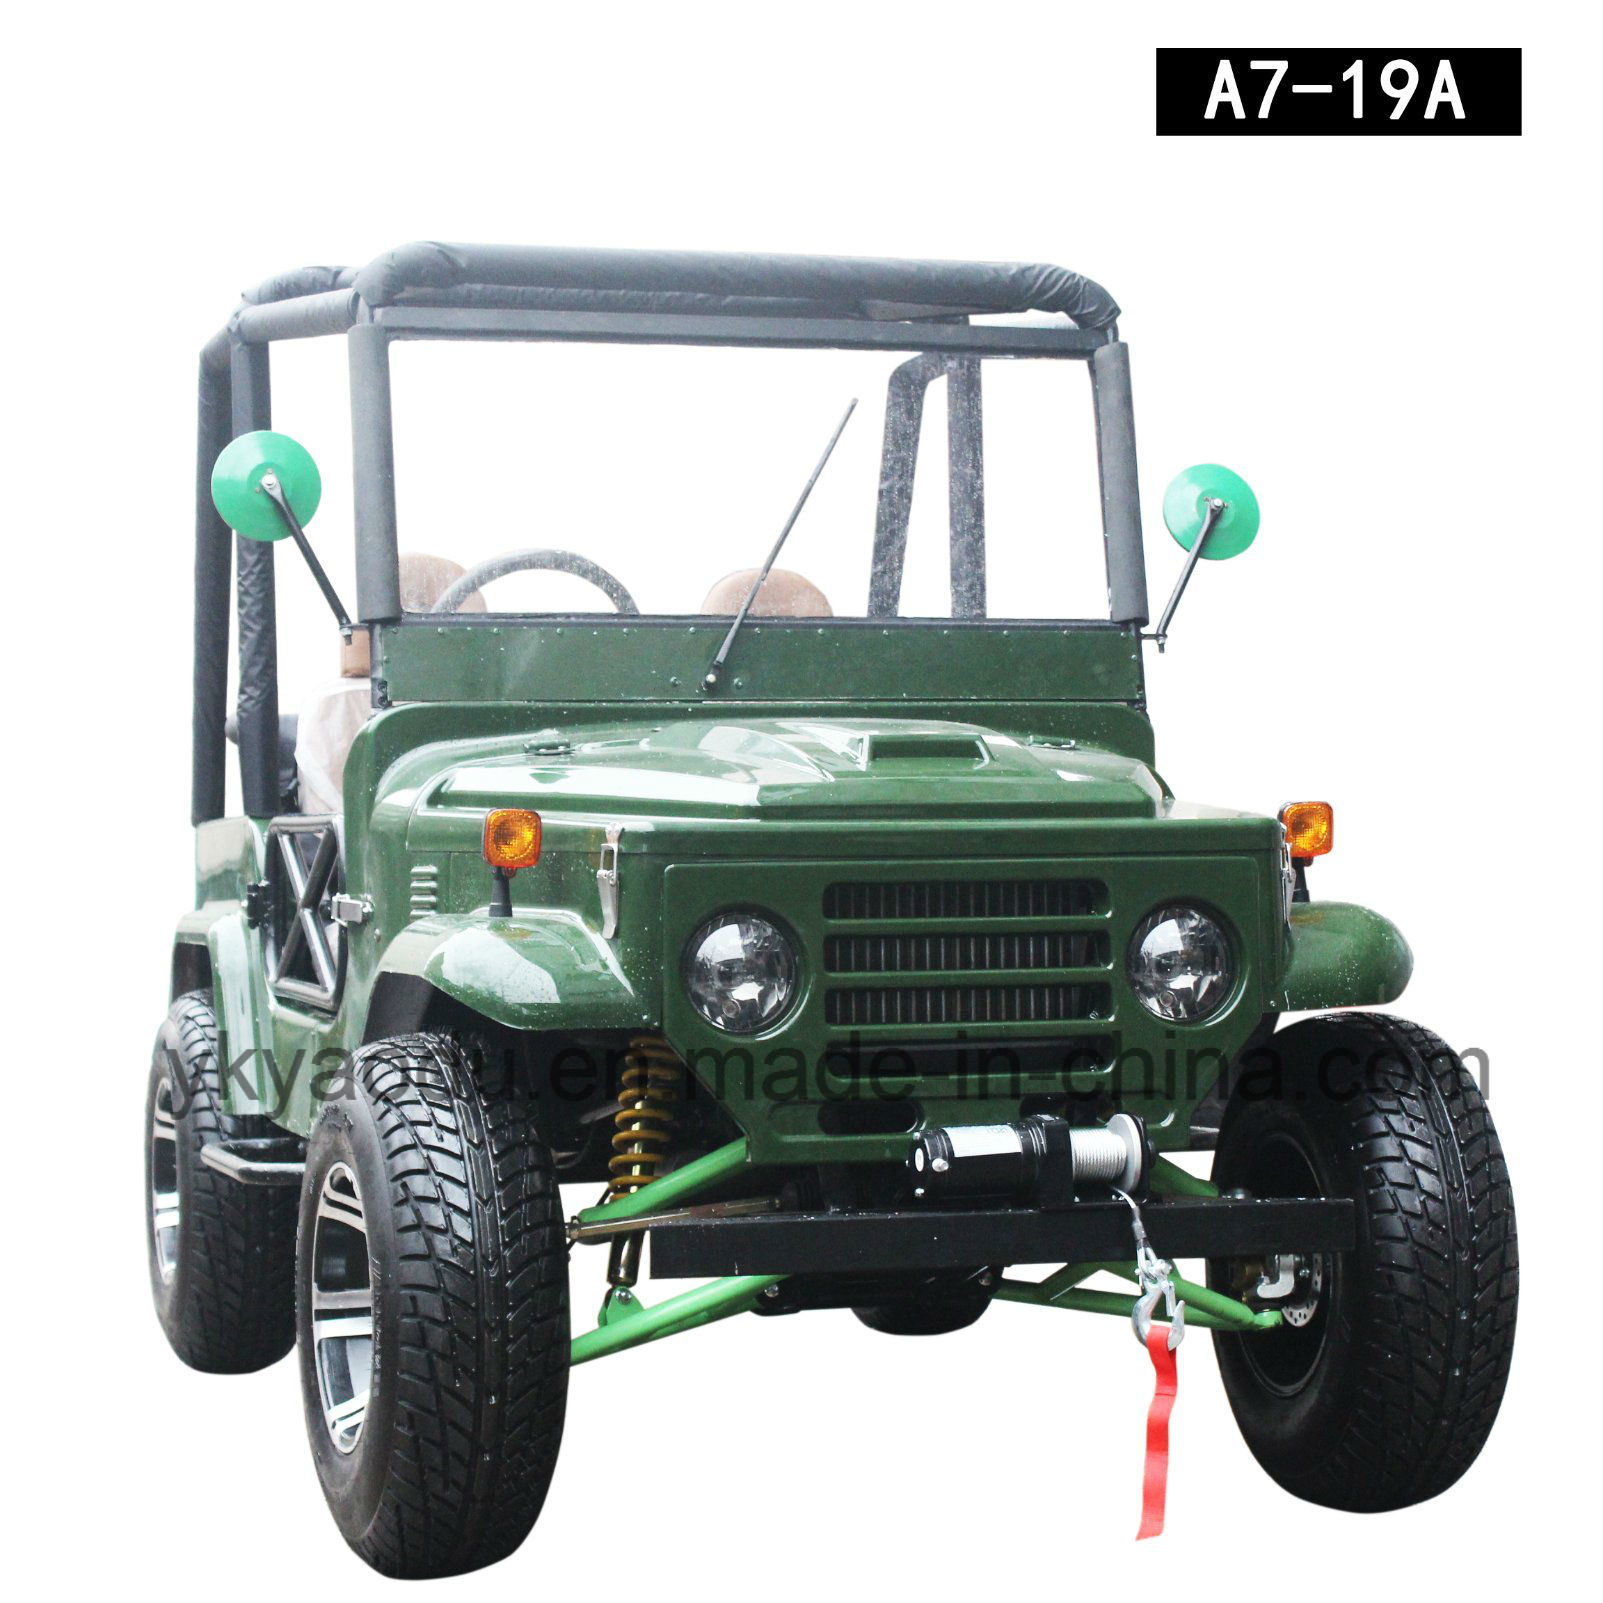 150cc/200cc/300cc Quad ATV, China Willys Jeep for Kids or Adult